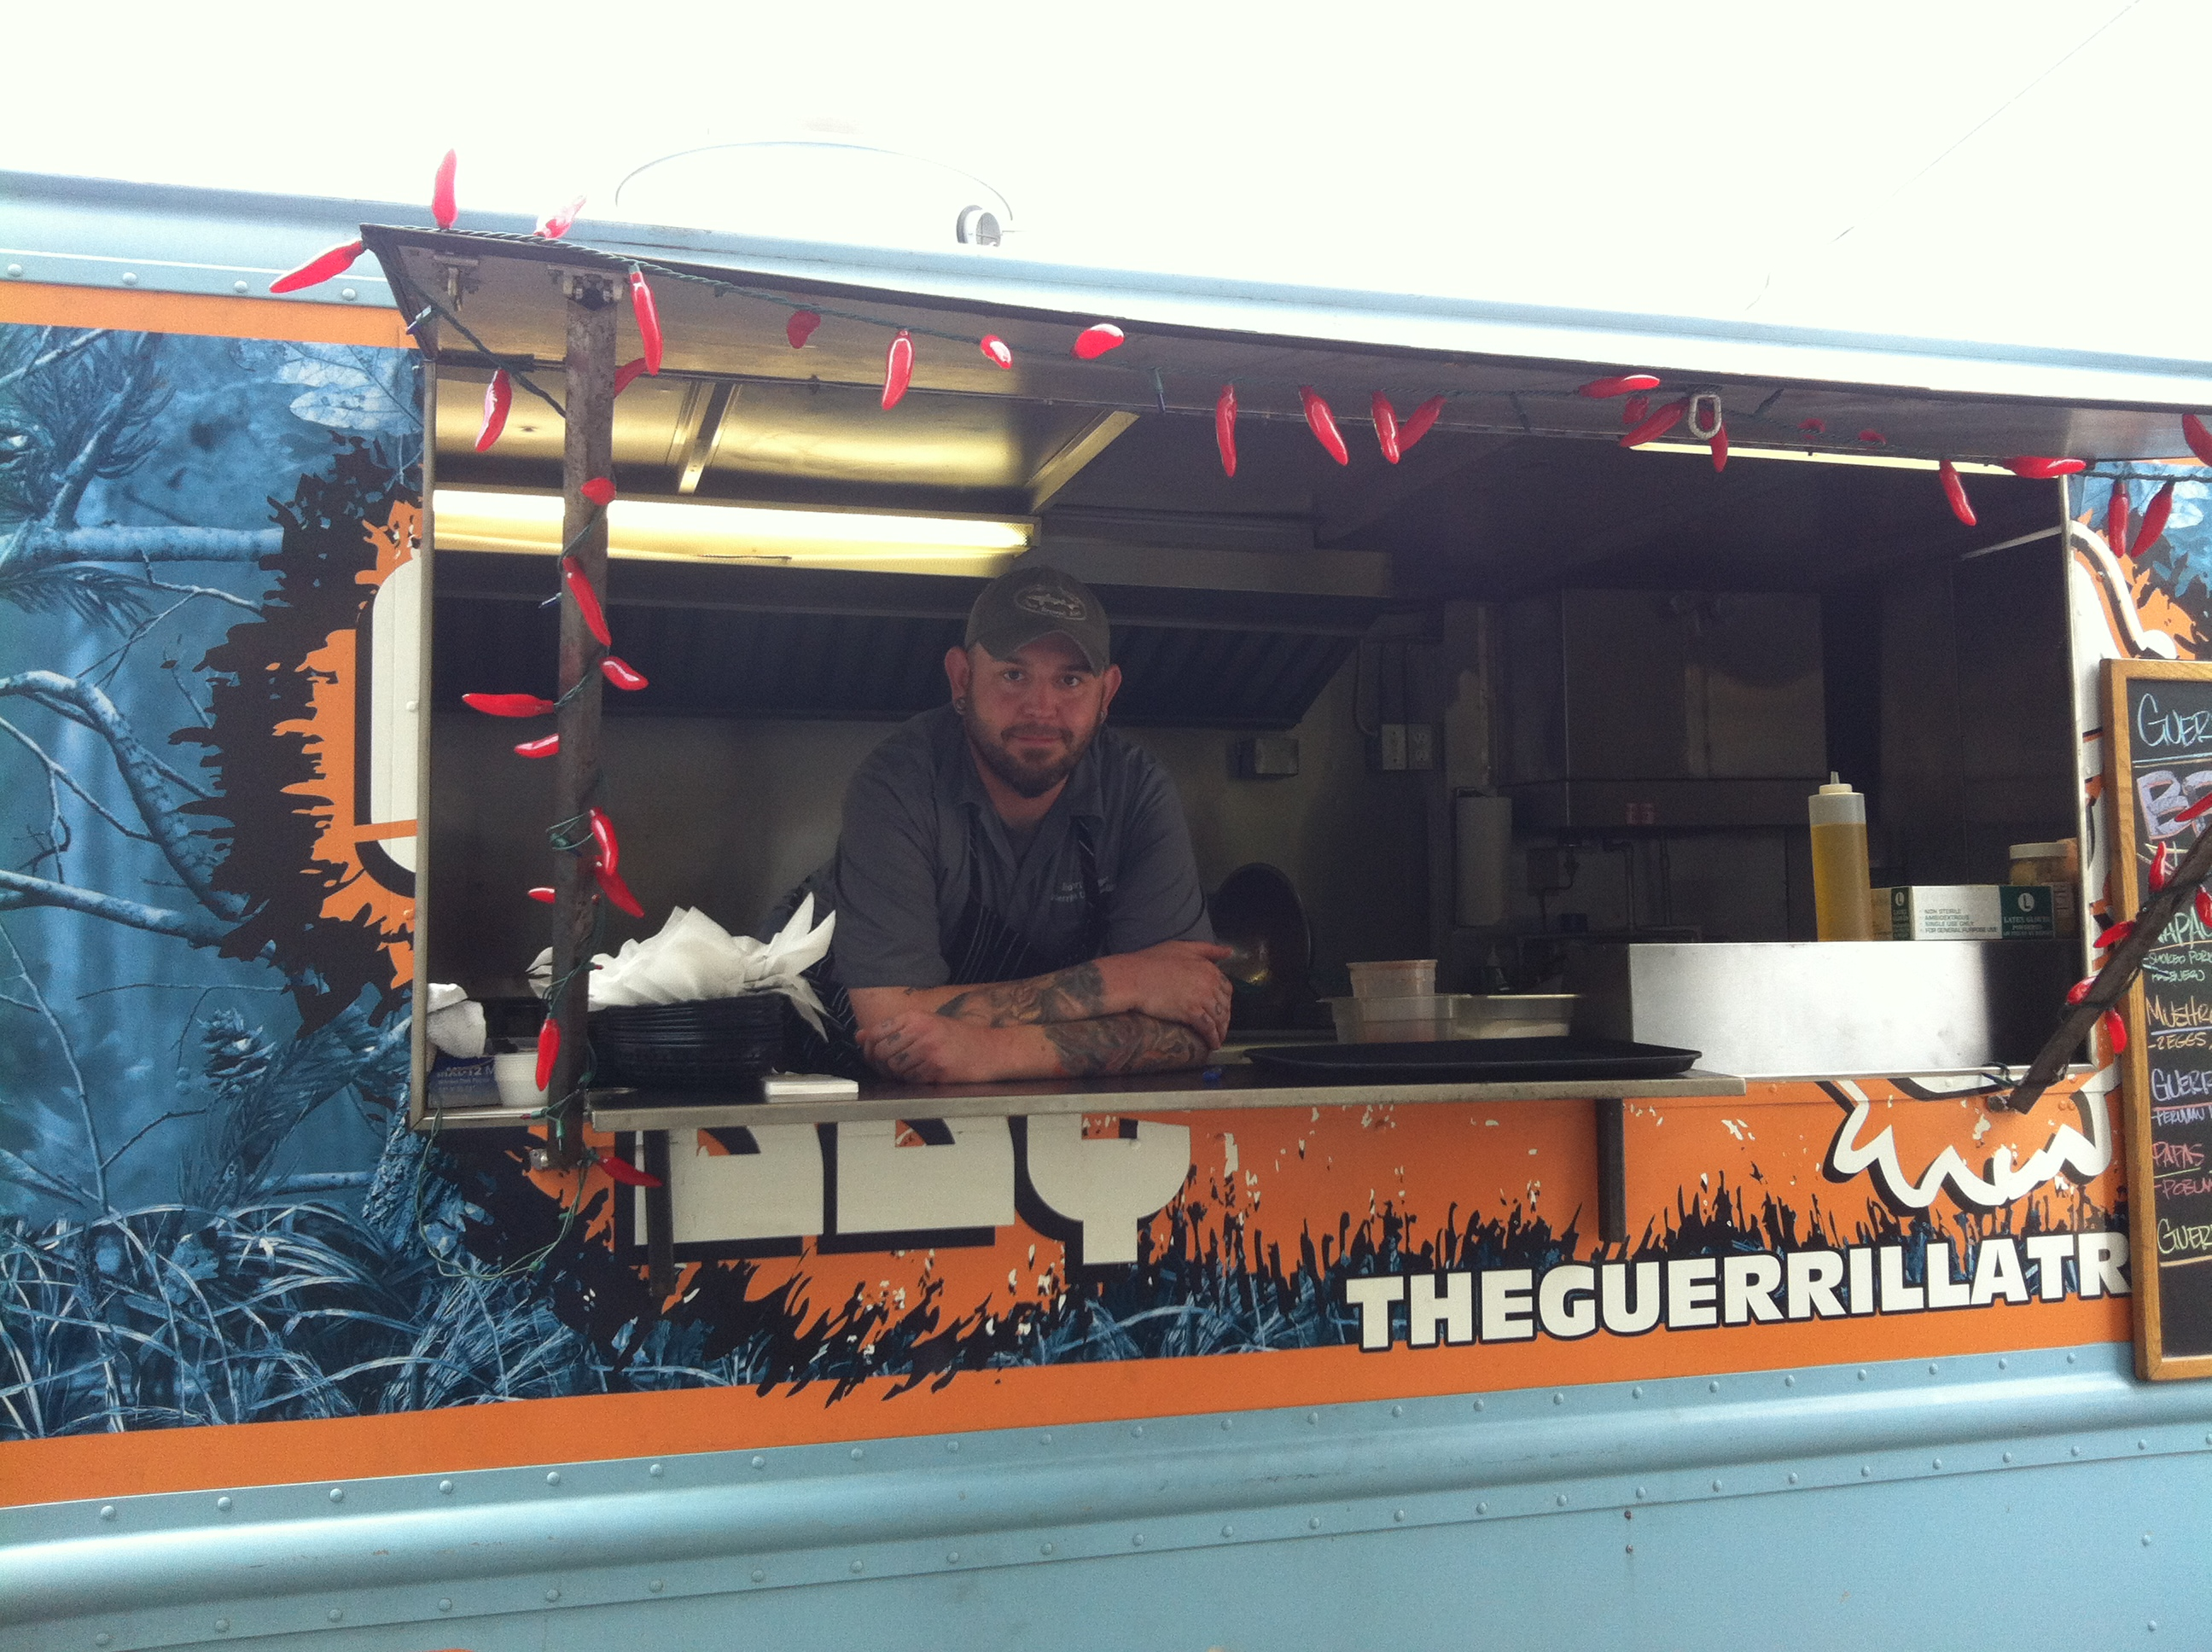 Chef Robert Legget started the Guerilla Ultima food truck nearly a year ago.